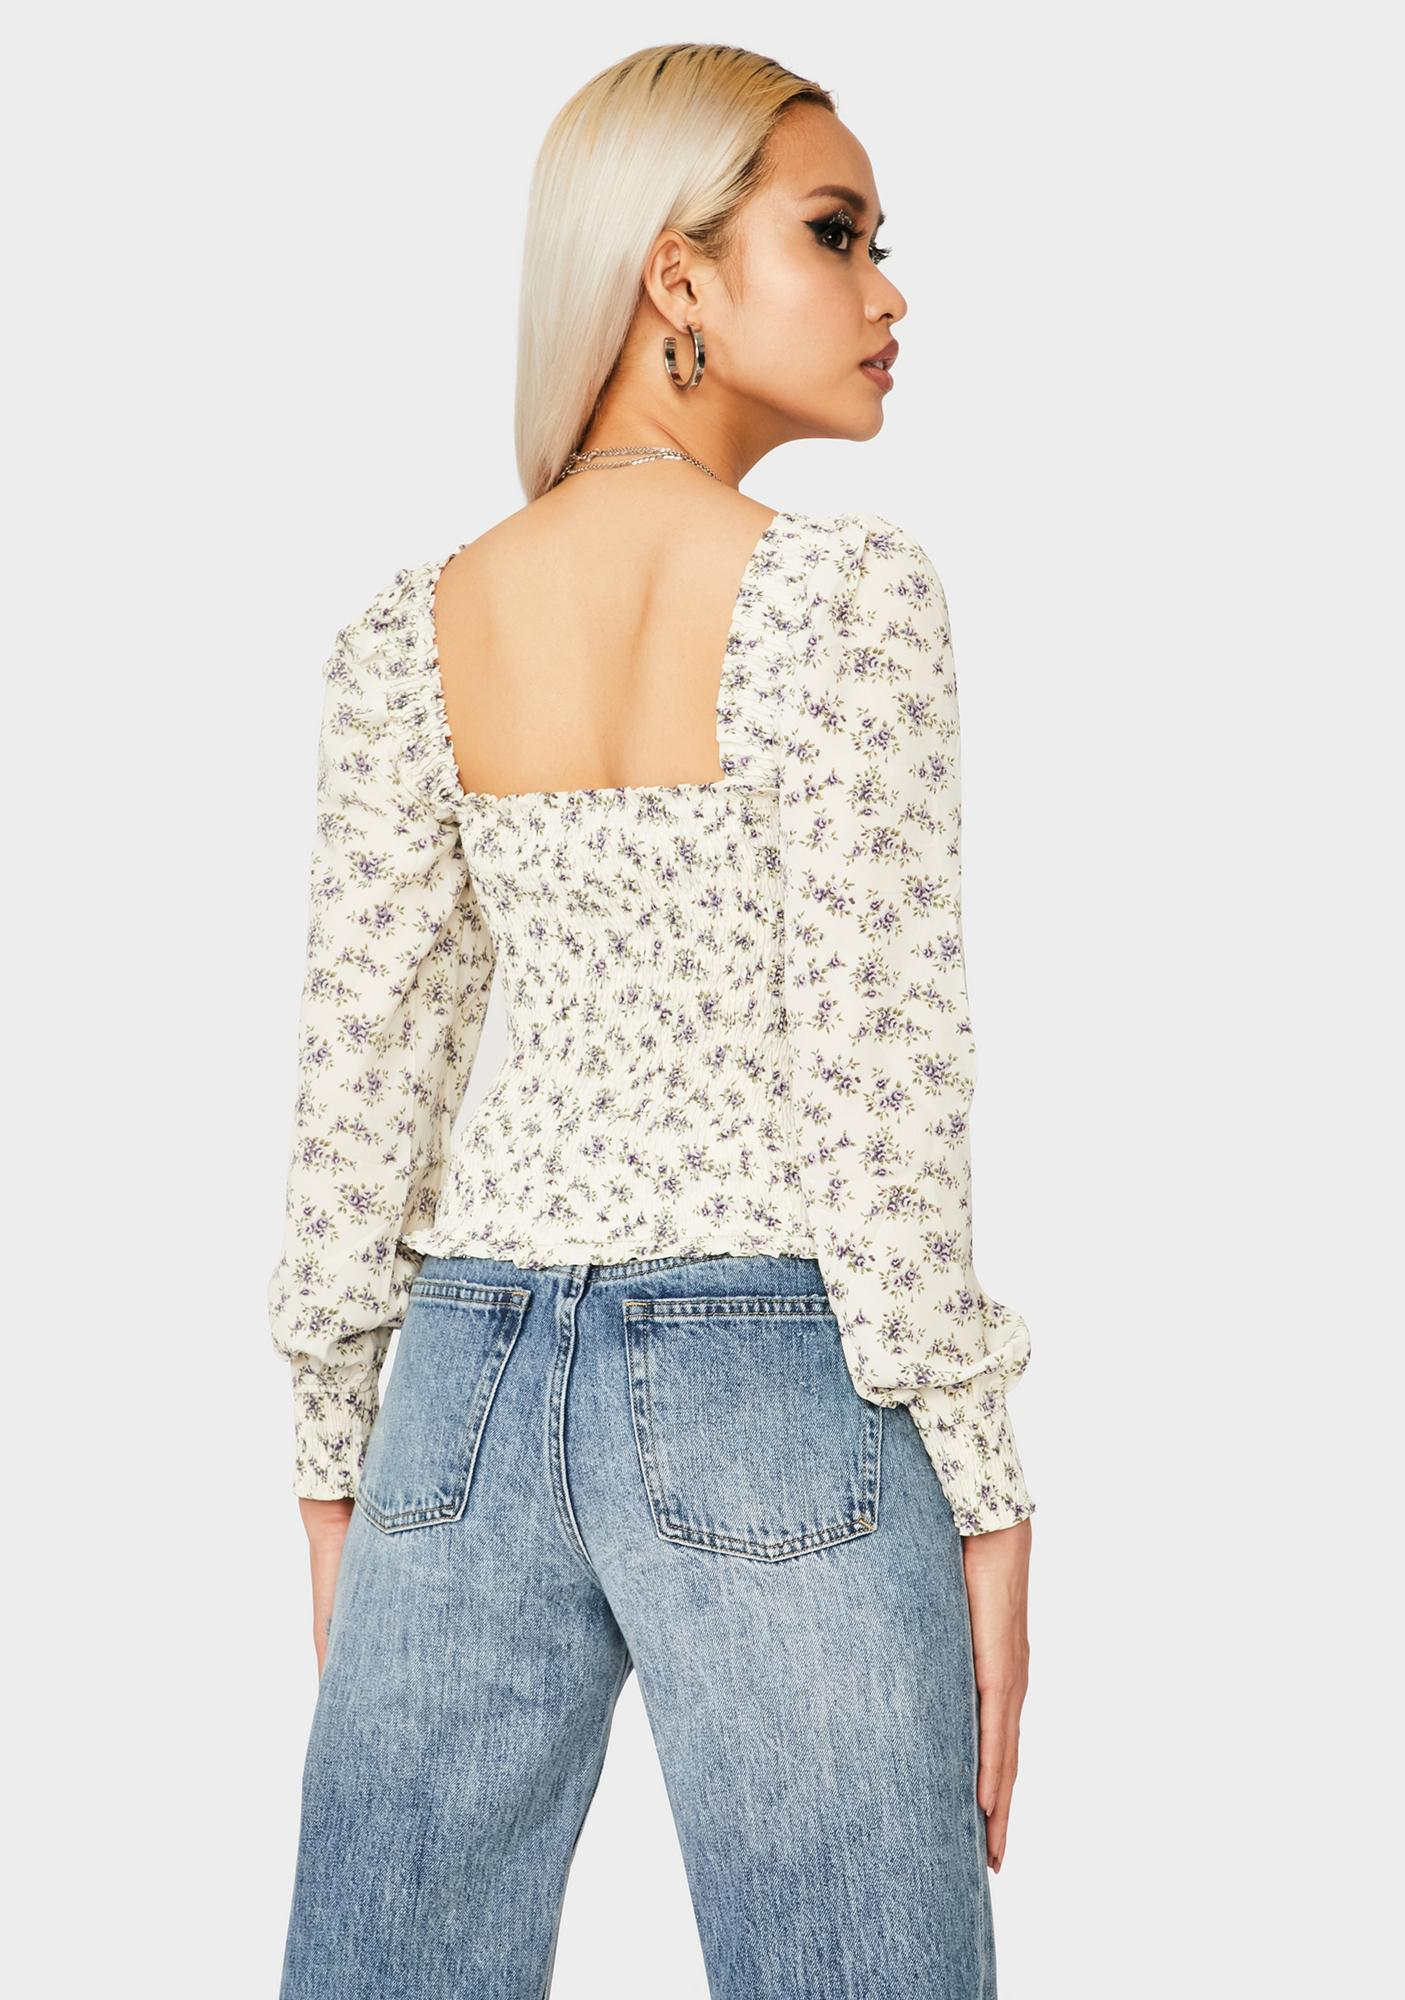 One Summer's Day Floral Top